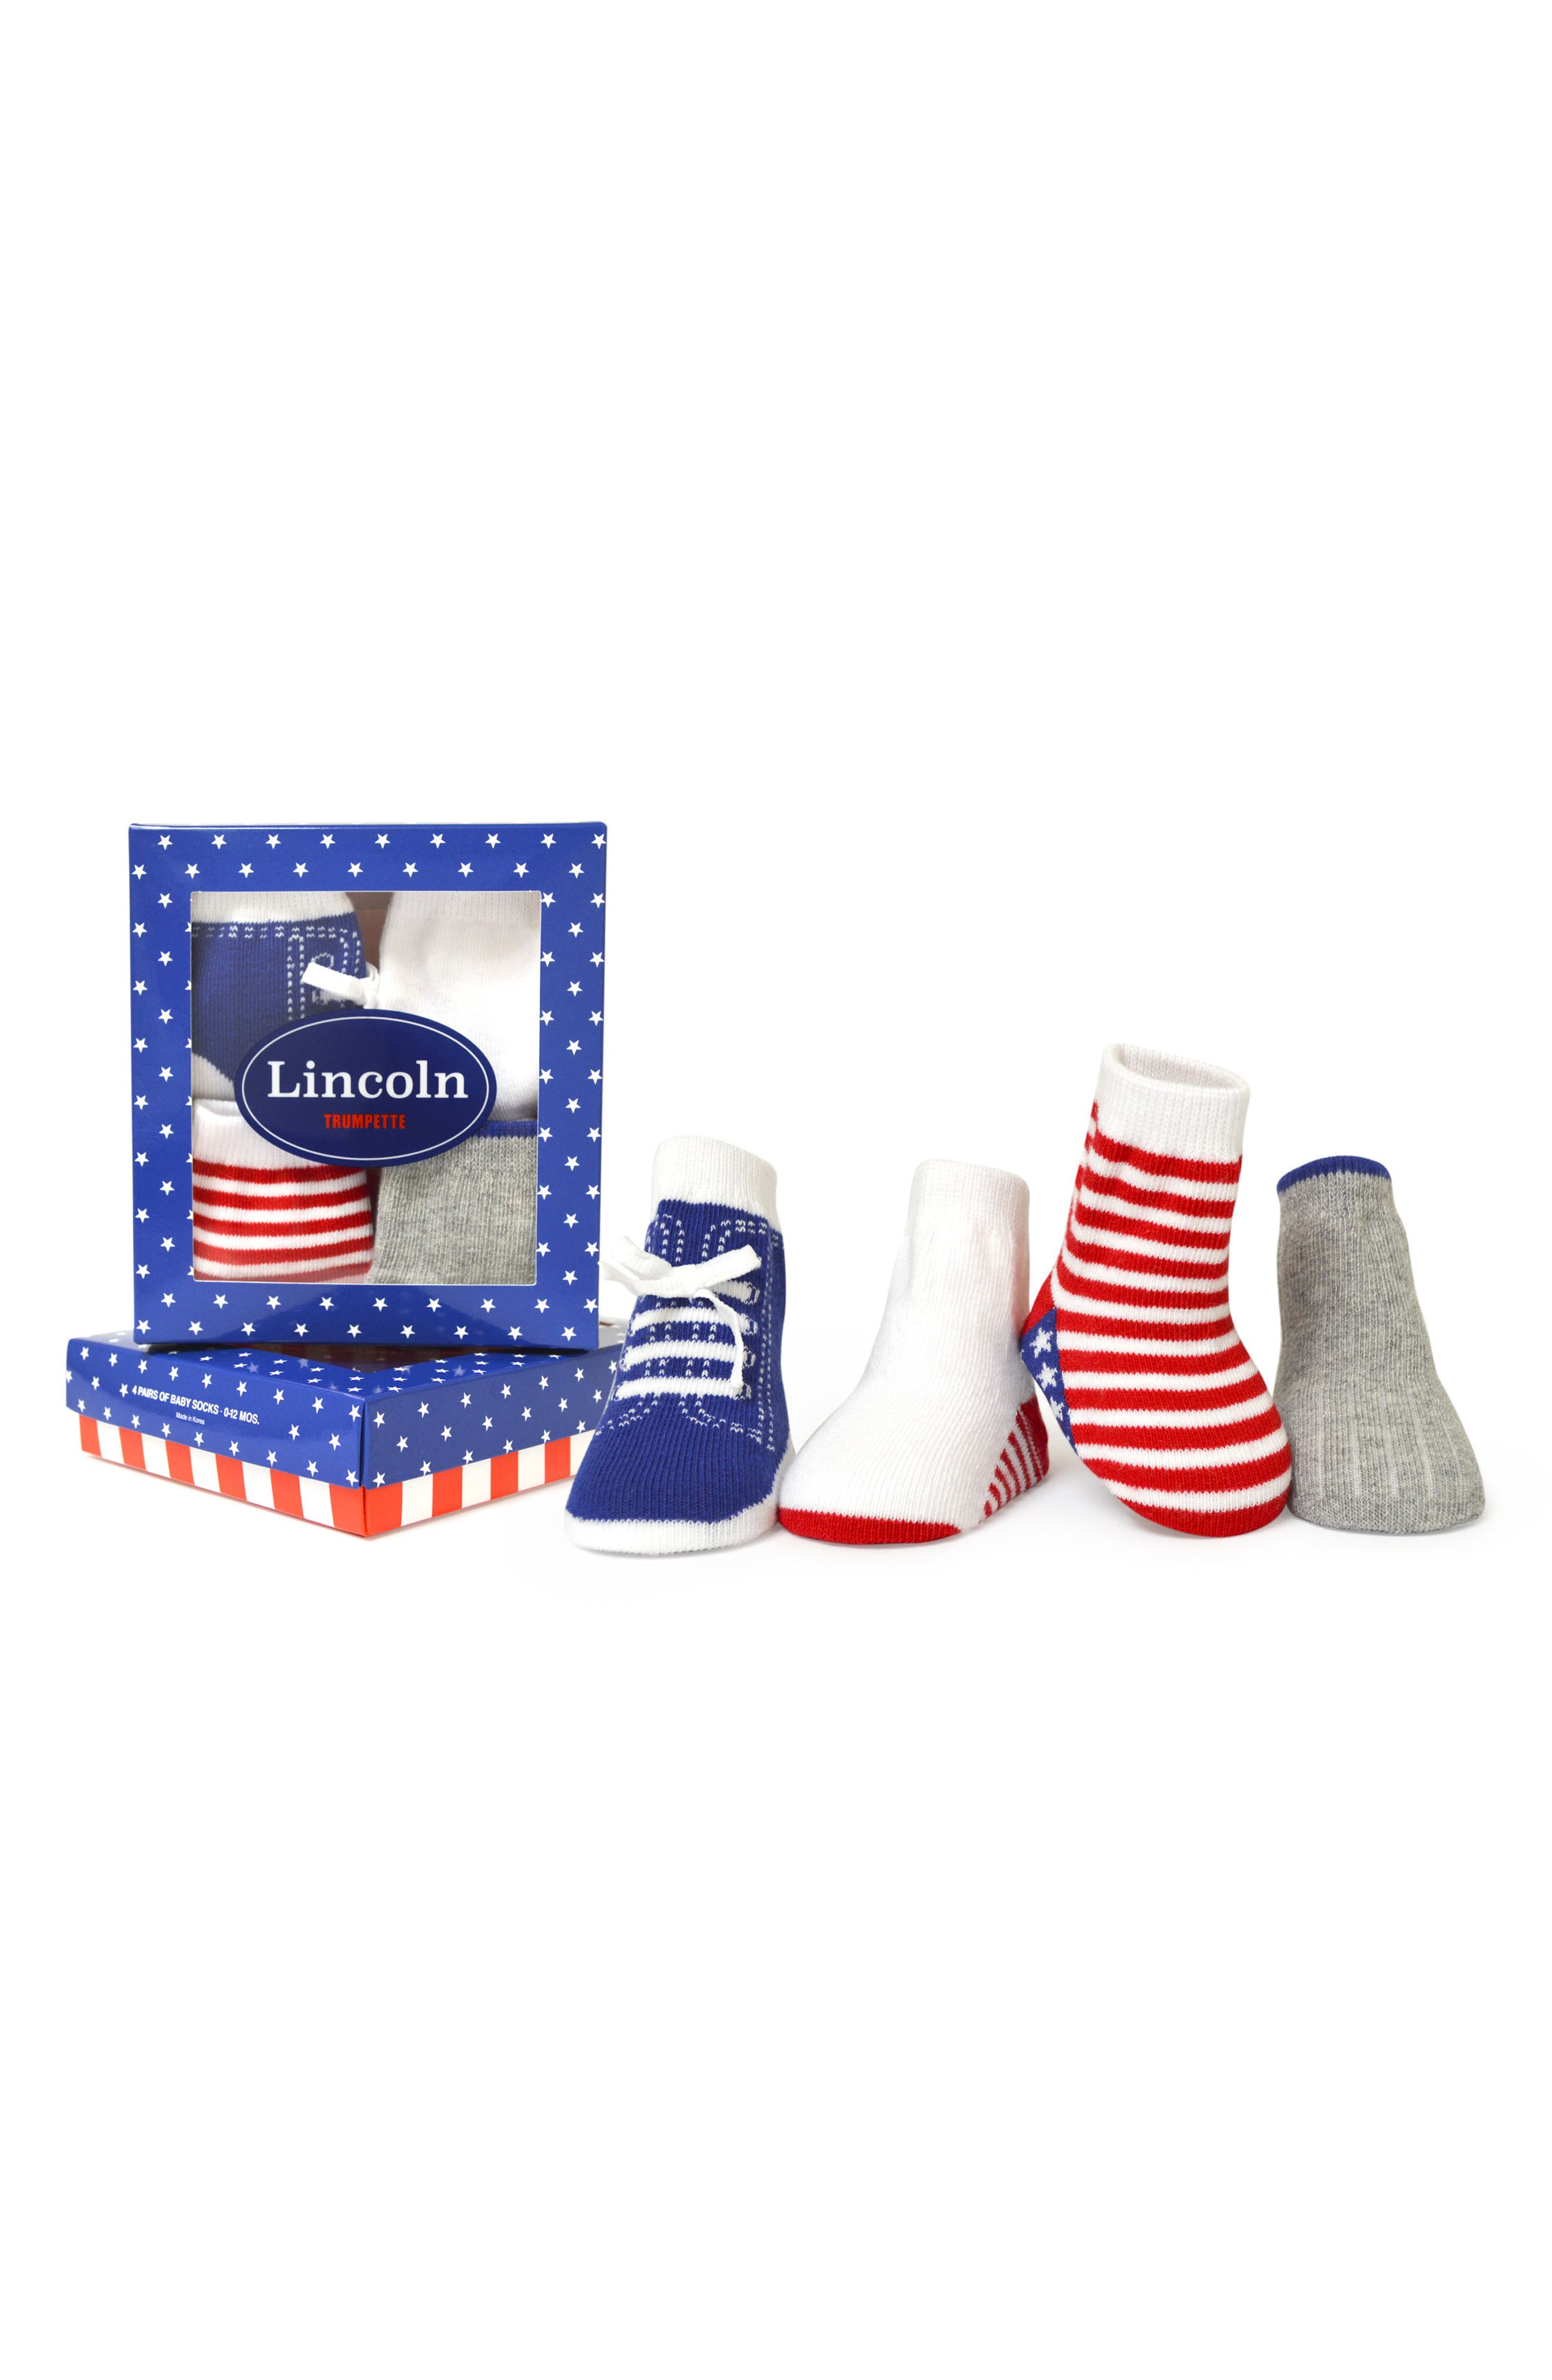 Main Image - Trumpette Lincoln 4-Pack Socks (Baby Boys)